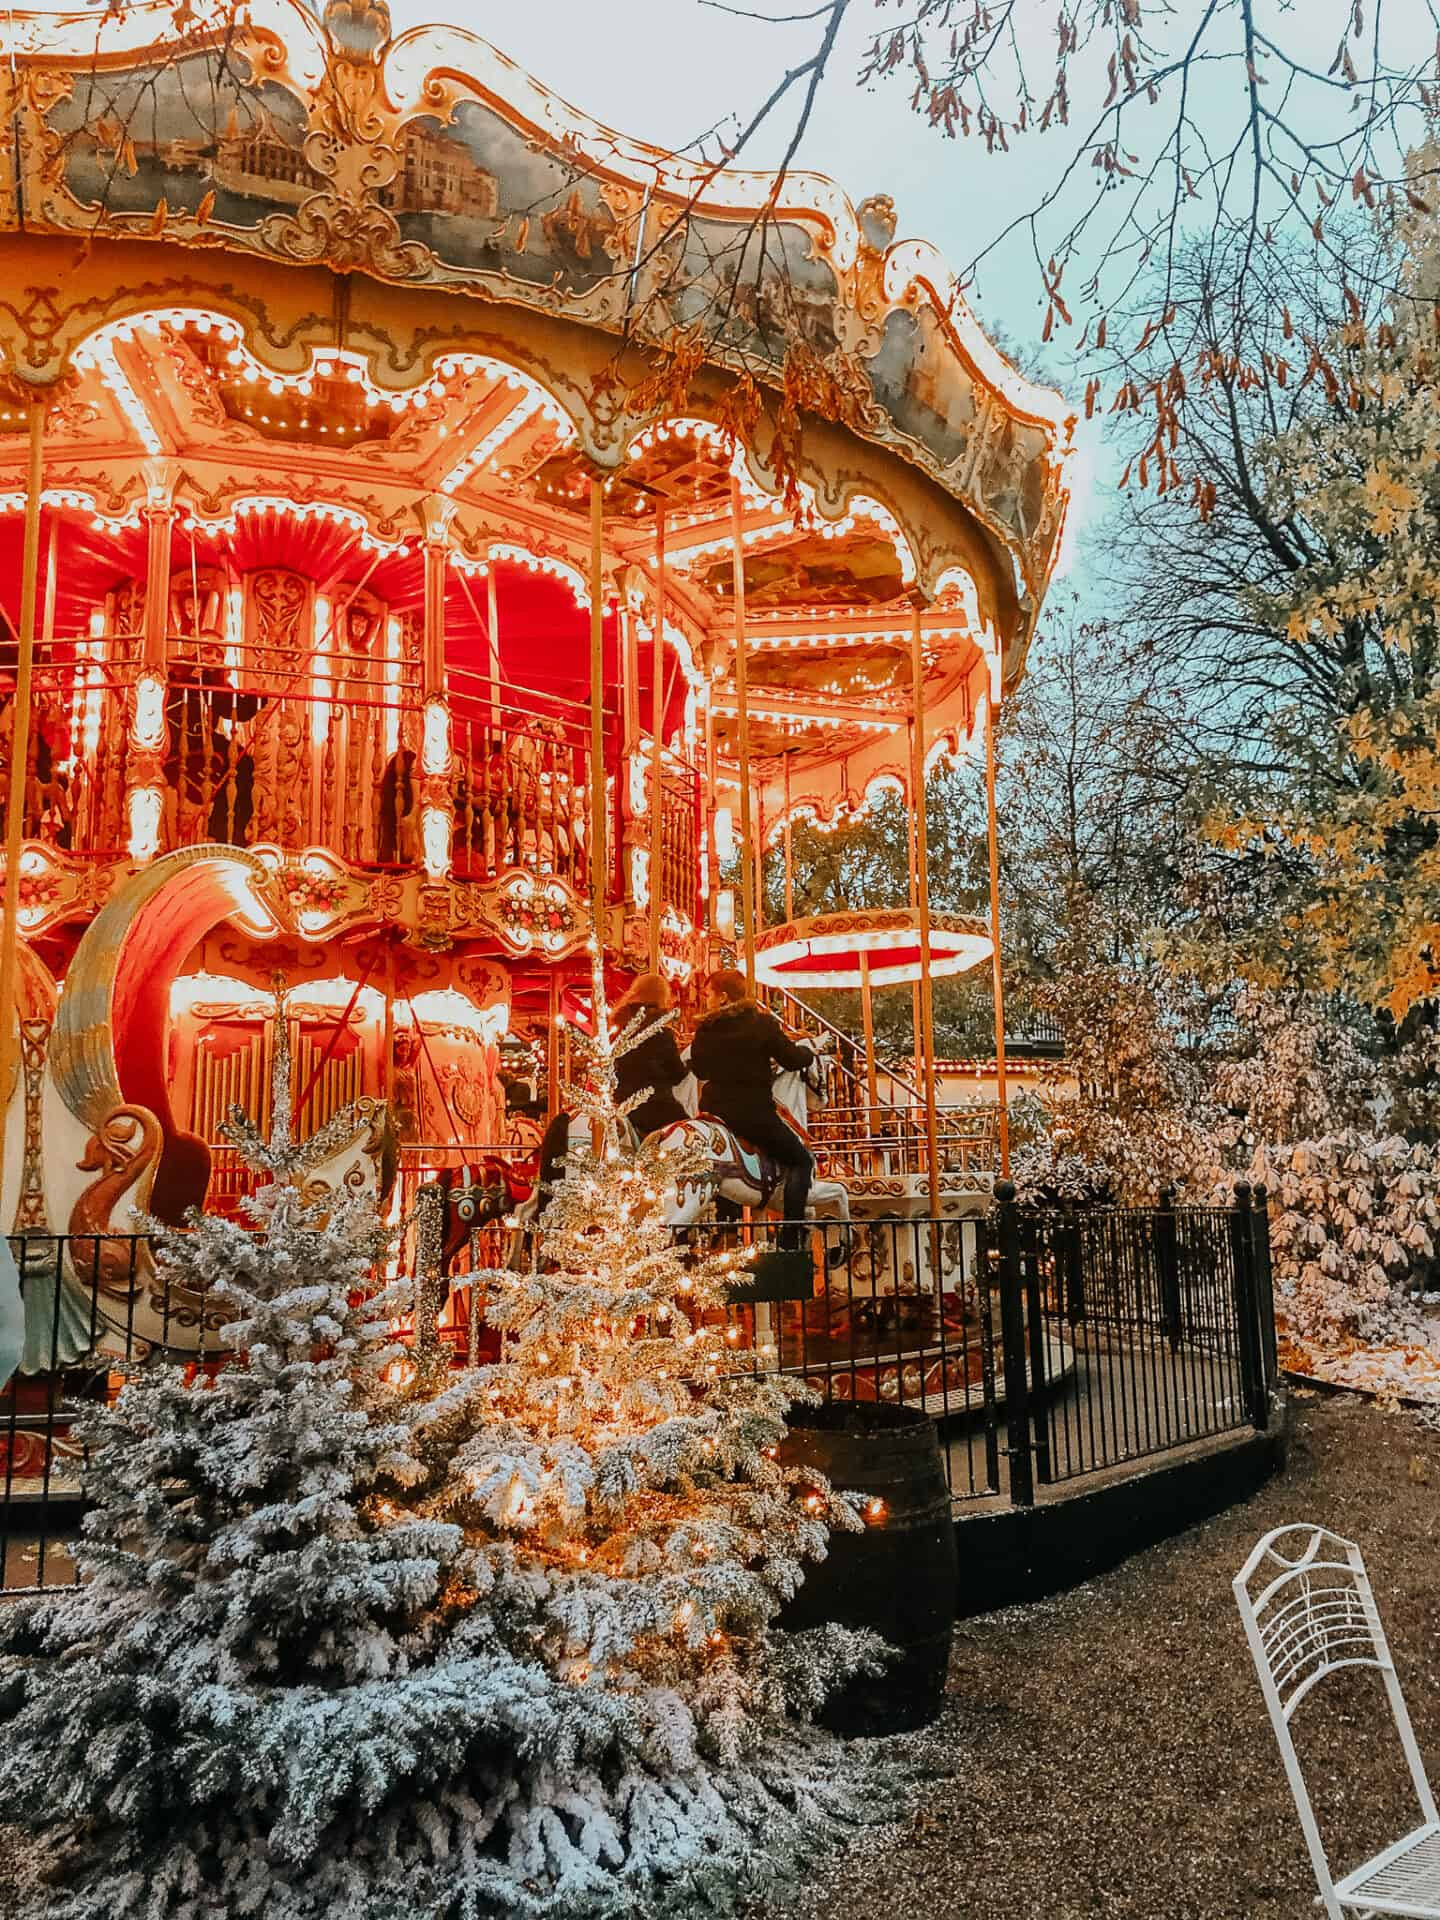 A photo tour to inspire you to visit the Christmas Markets in Europe: Tivoli